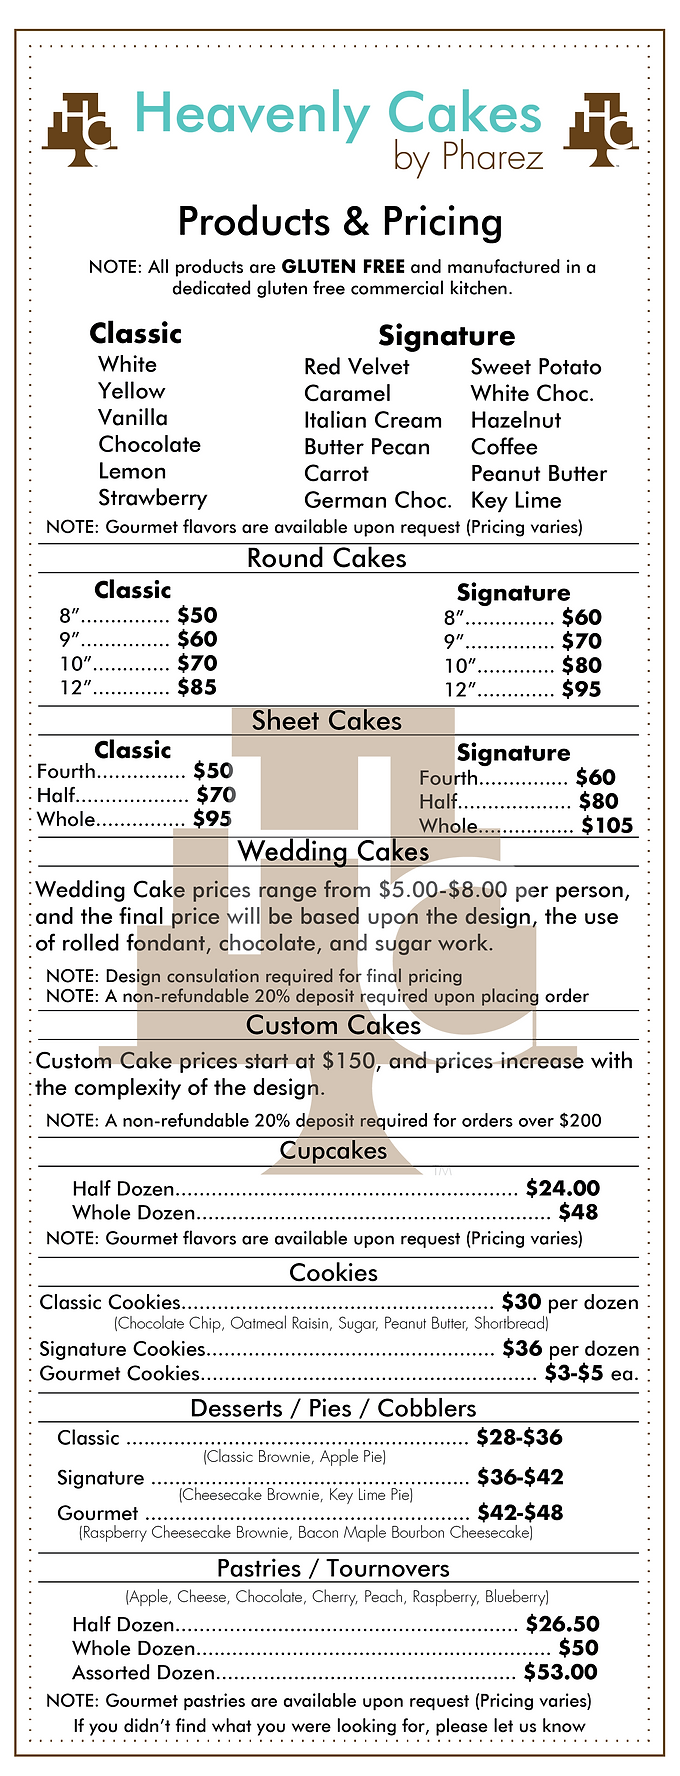 Heavenly Cakes_Menu_070719.png